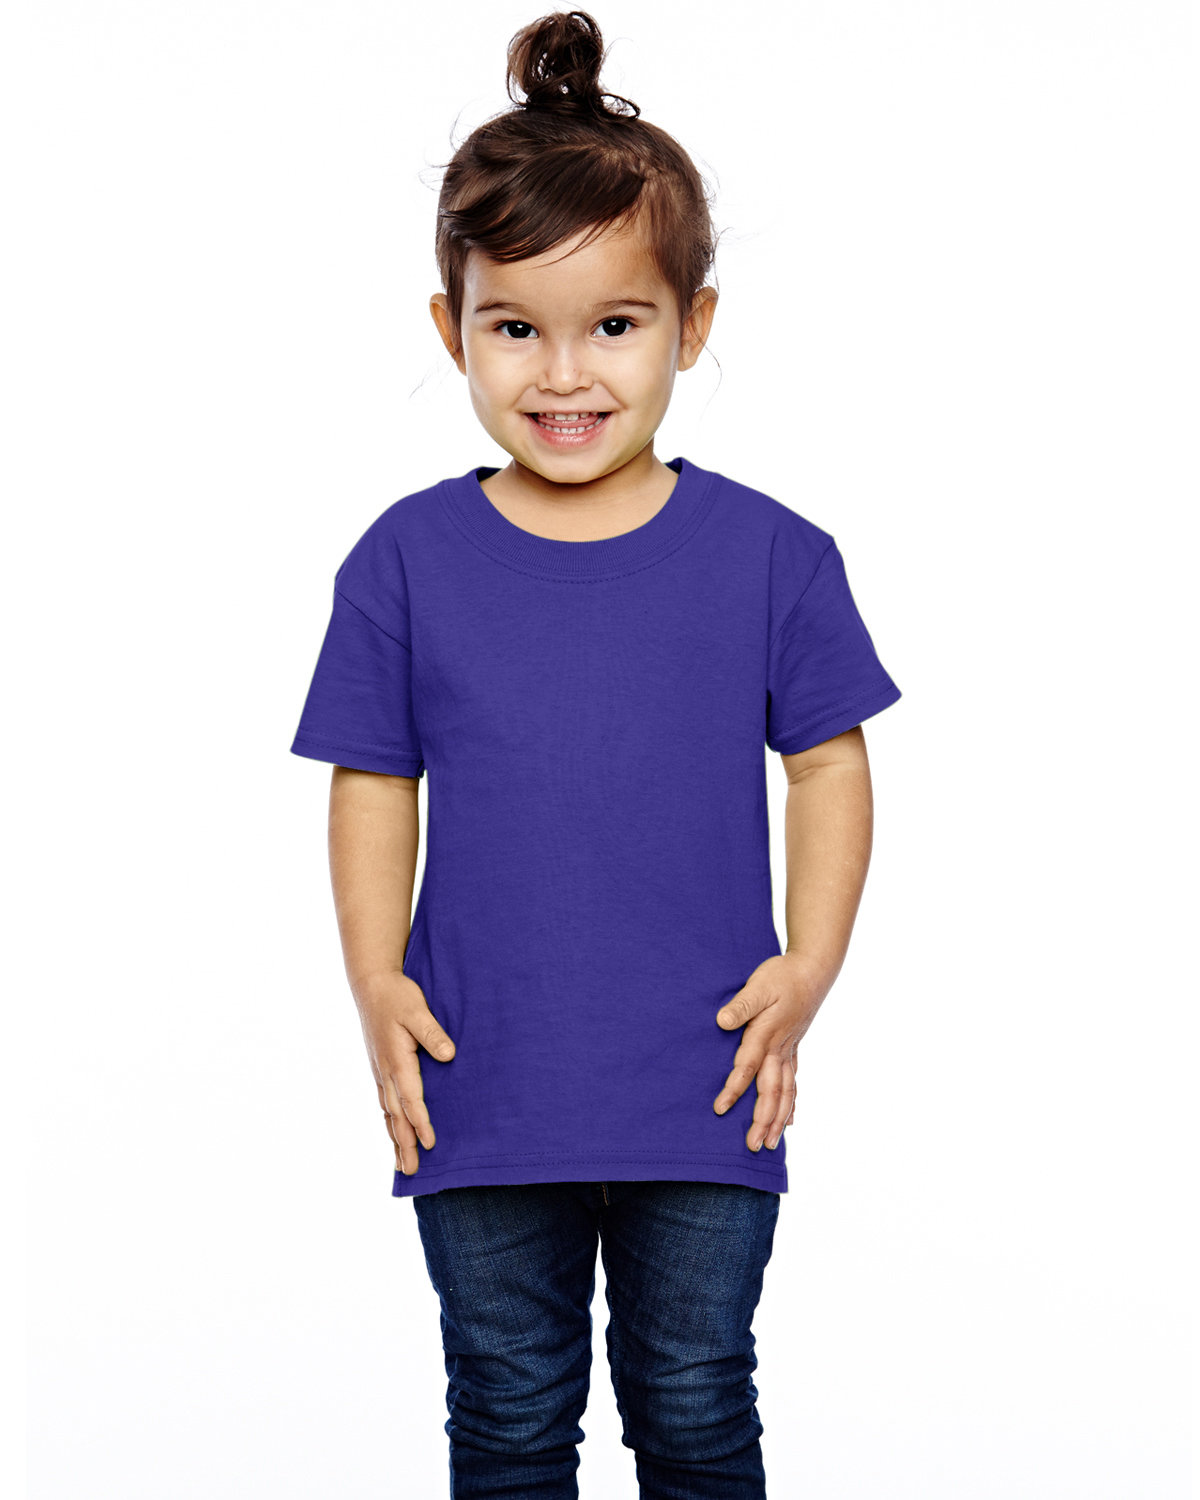 Fruit of the Loom Toddler HD Cotton™ T-Shirt PURPLE